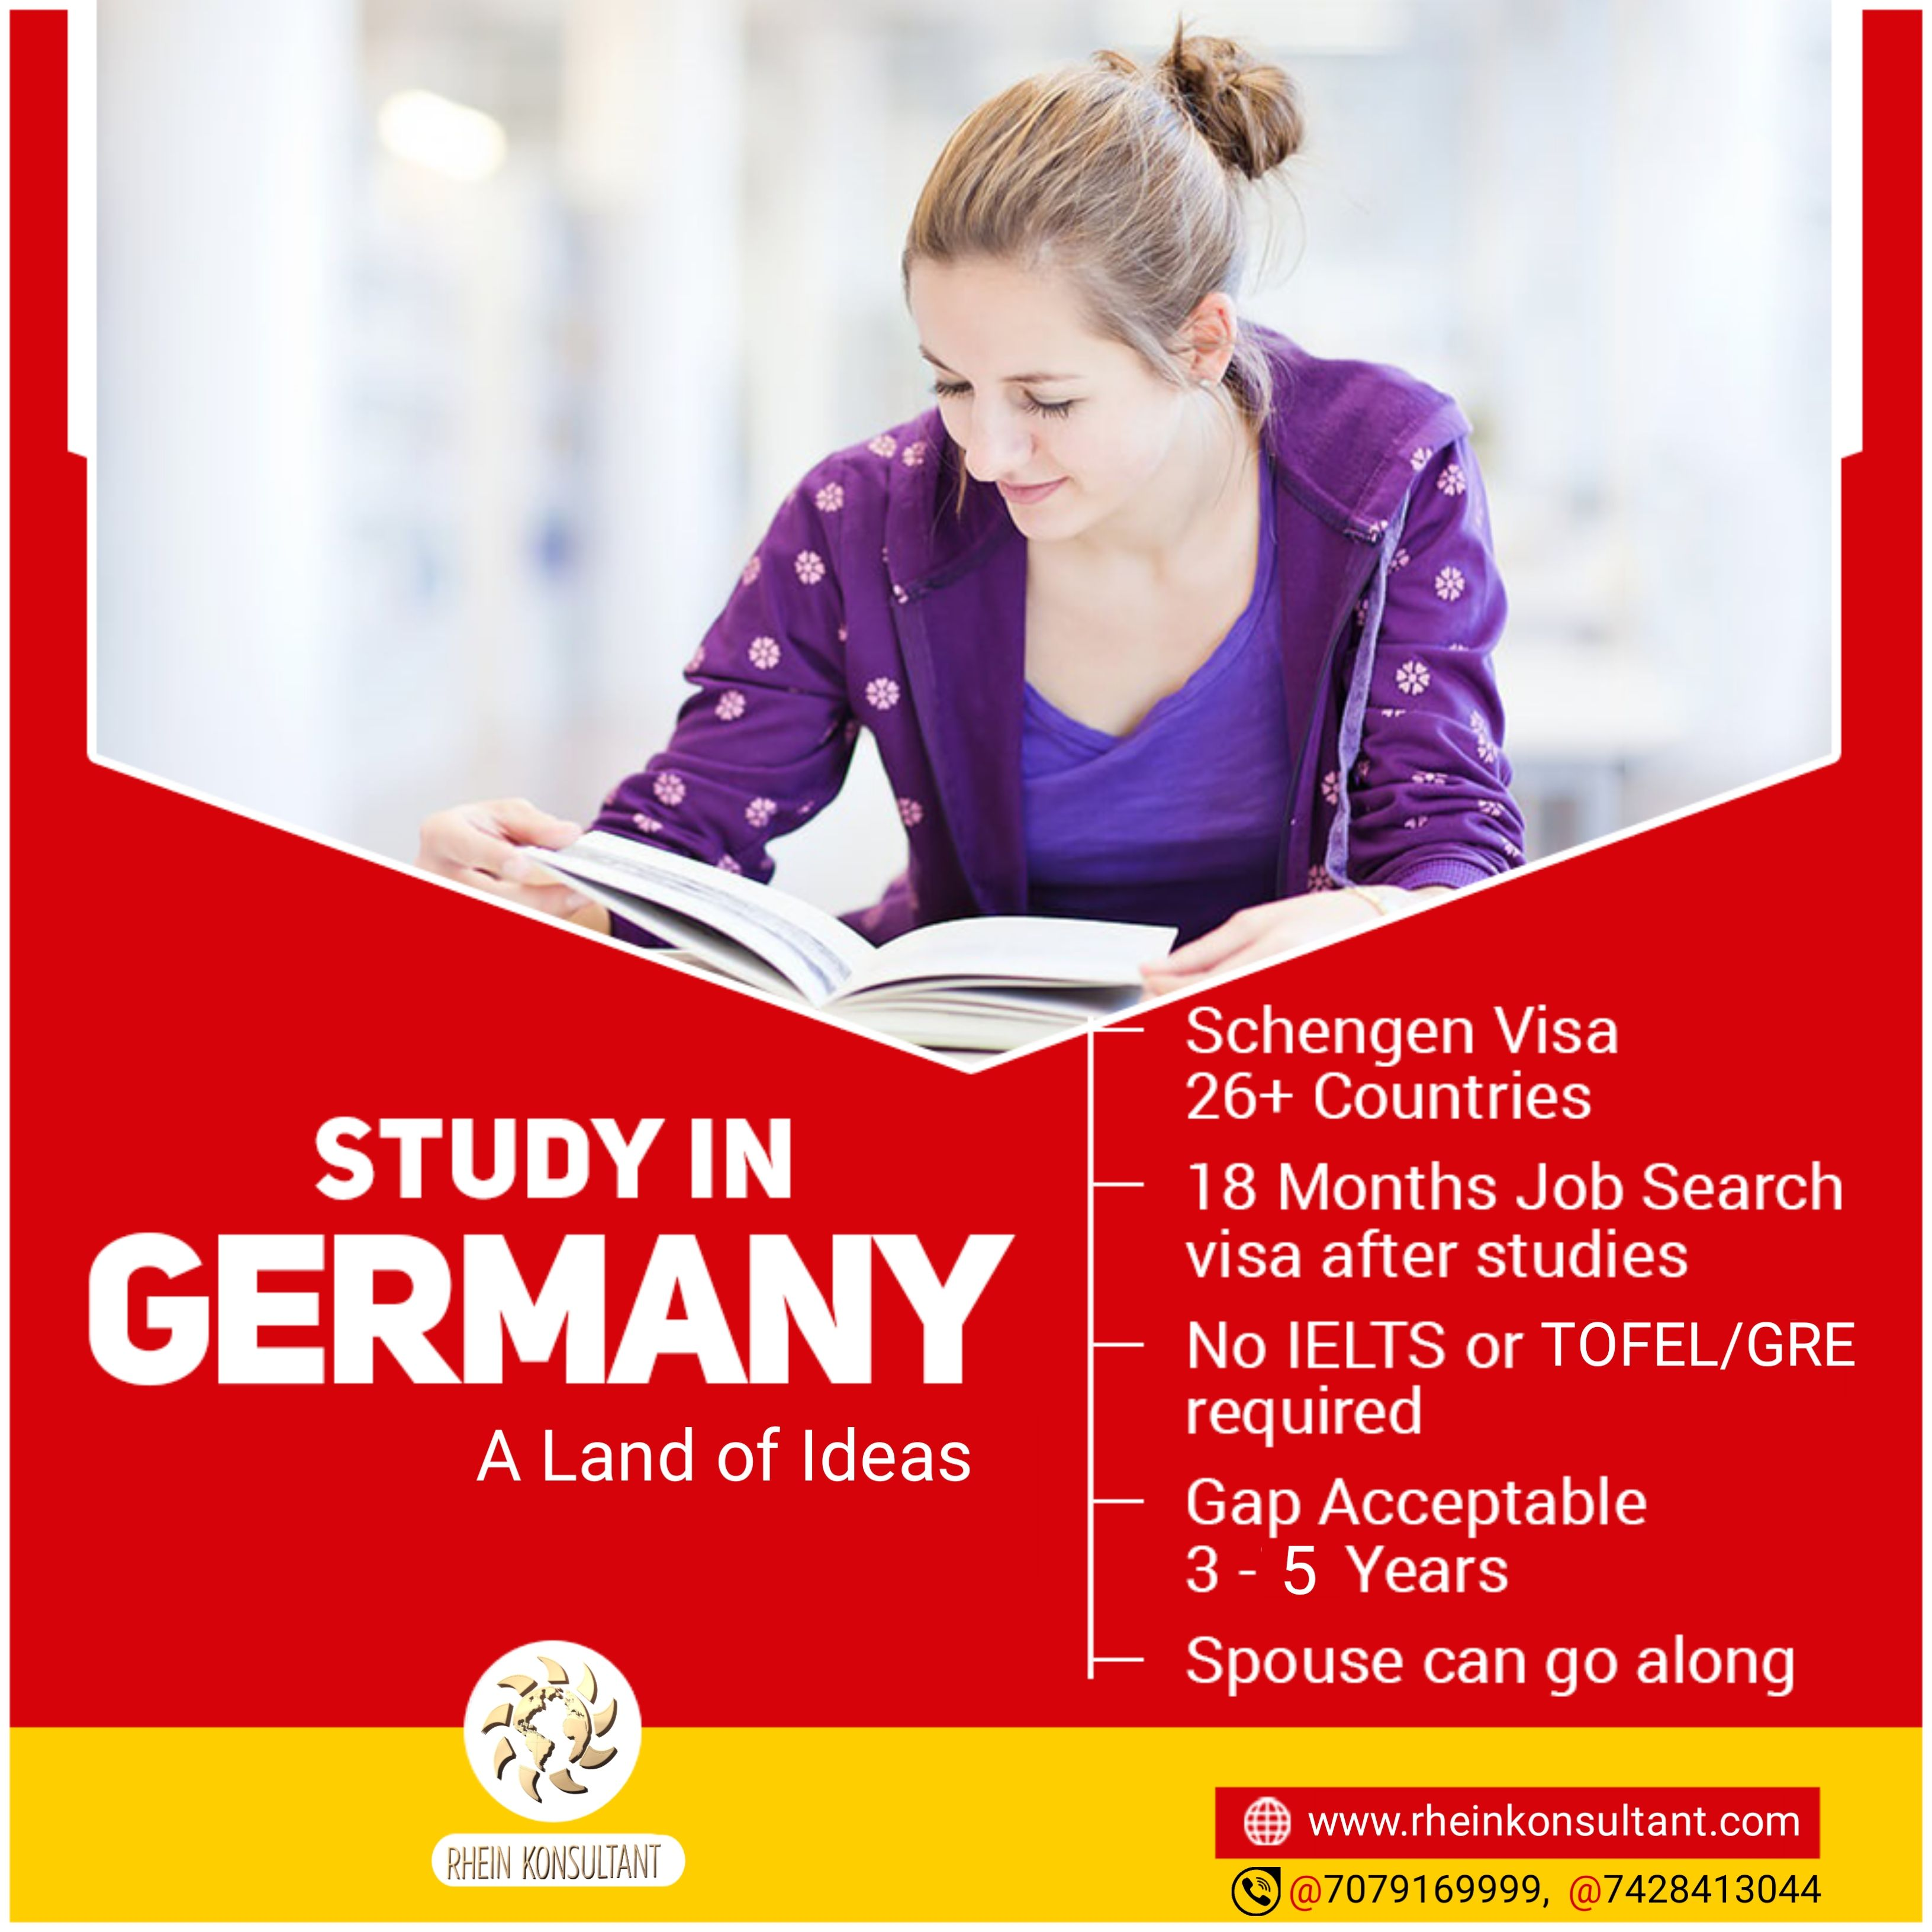 541babd55f4fafc5c115e4f3282d0f92 - How To Get A Job In Germany After Masters